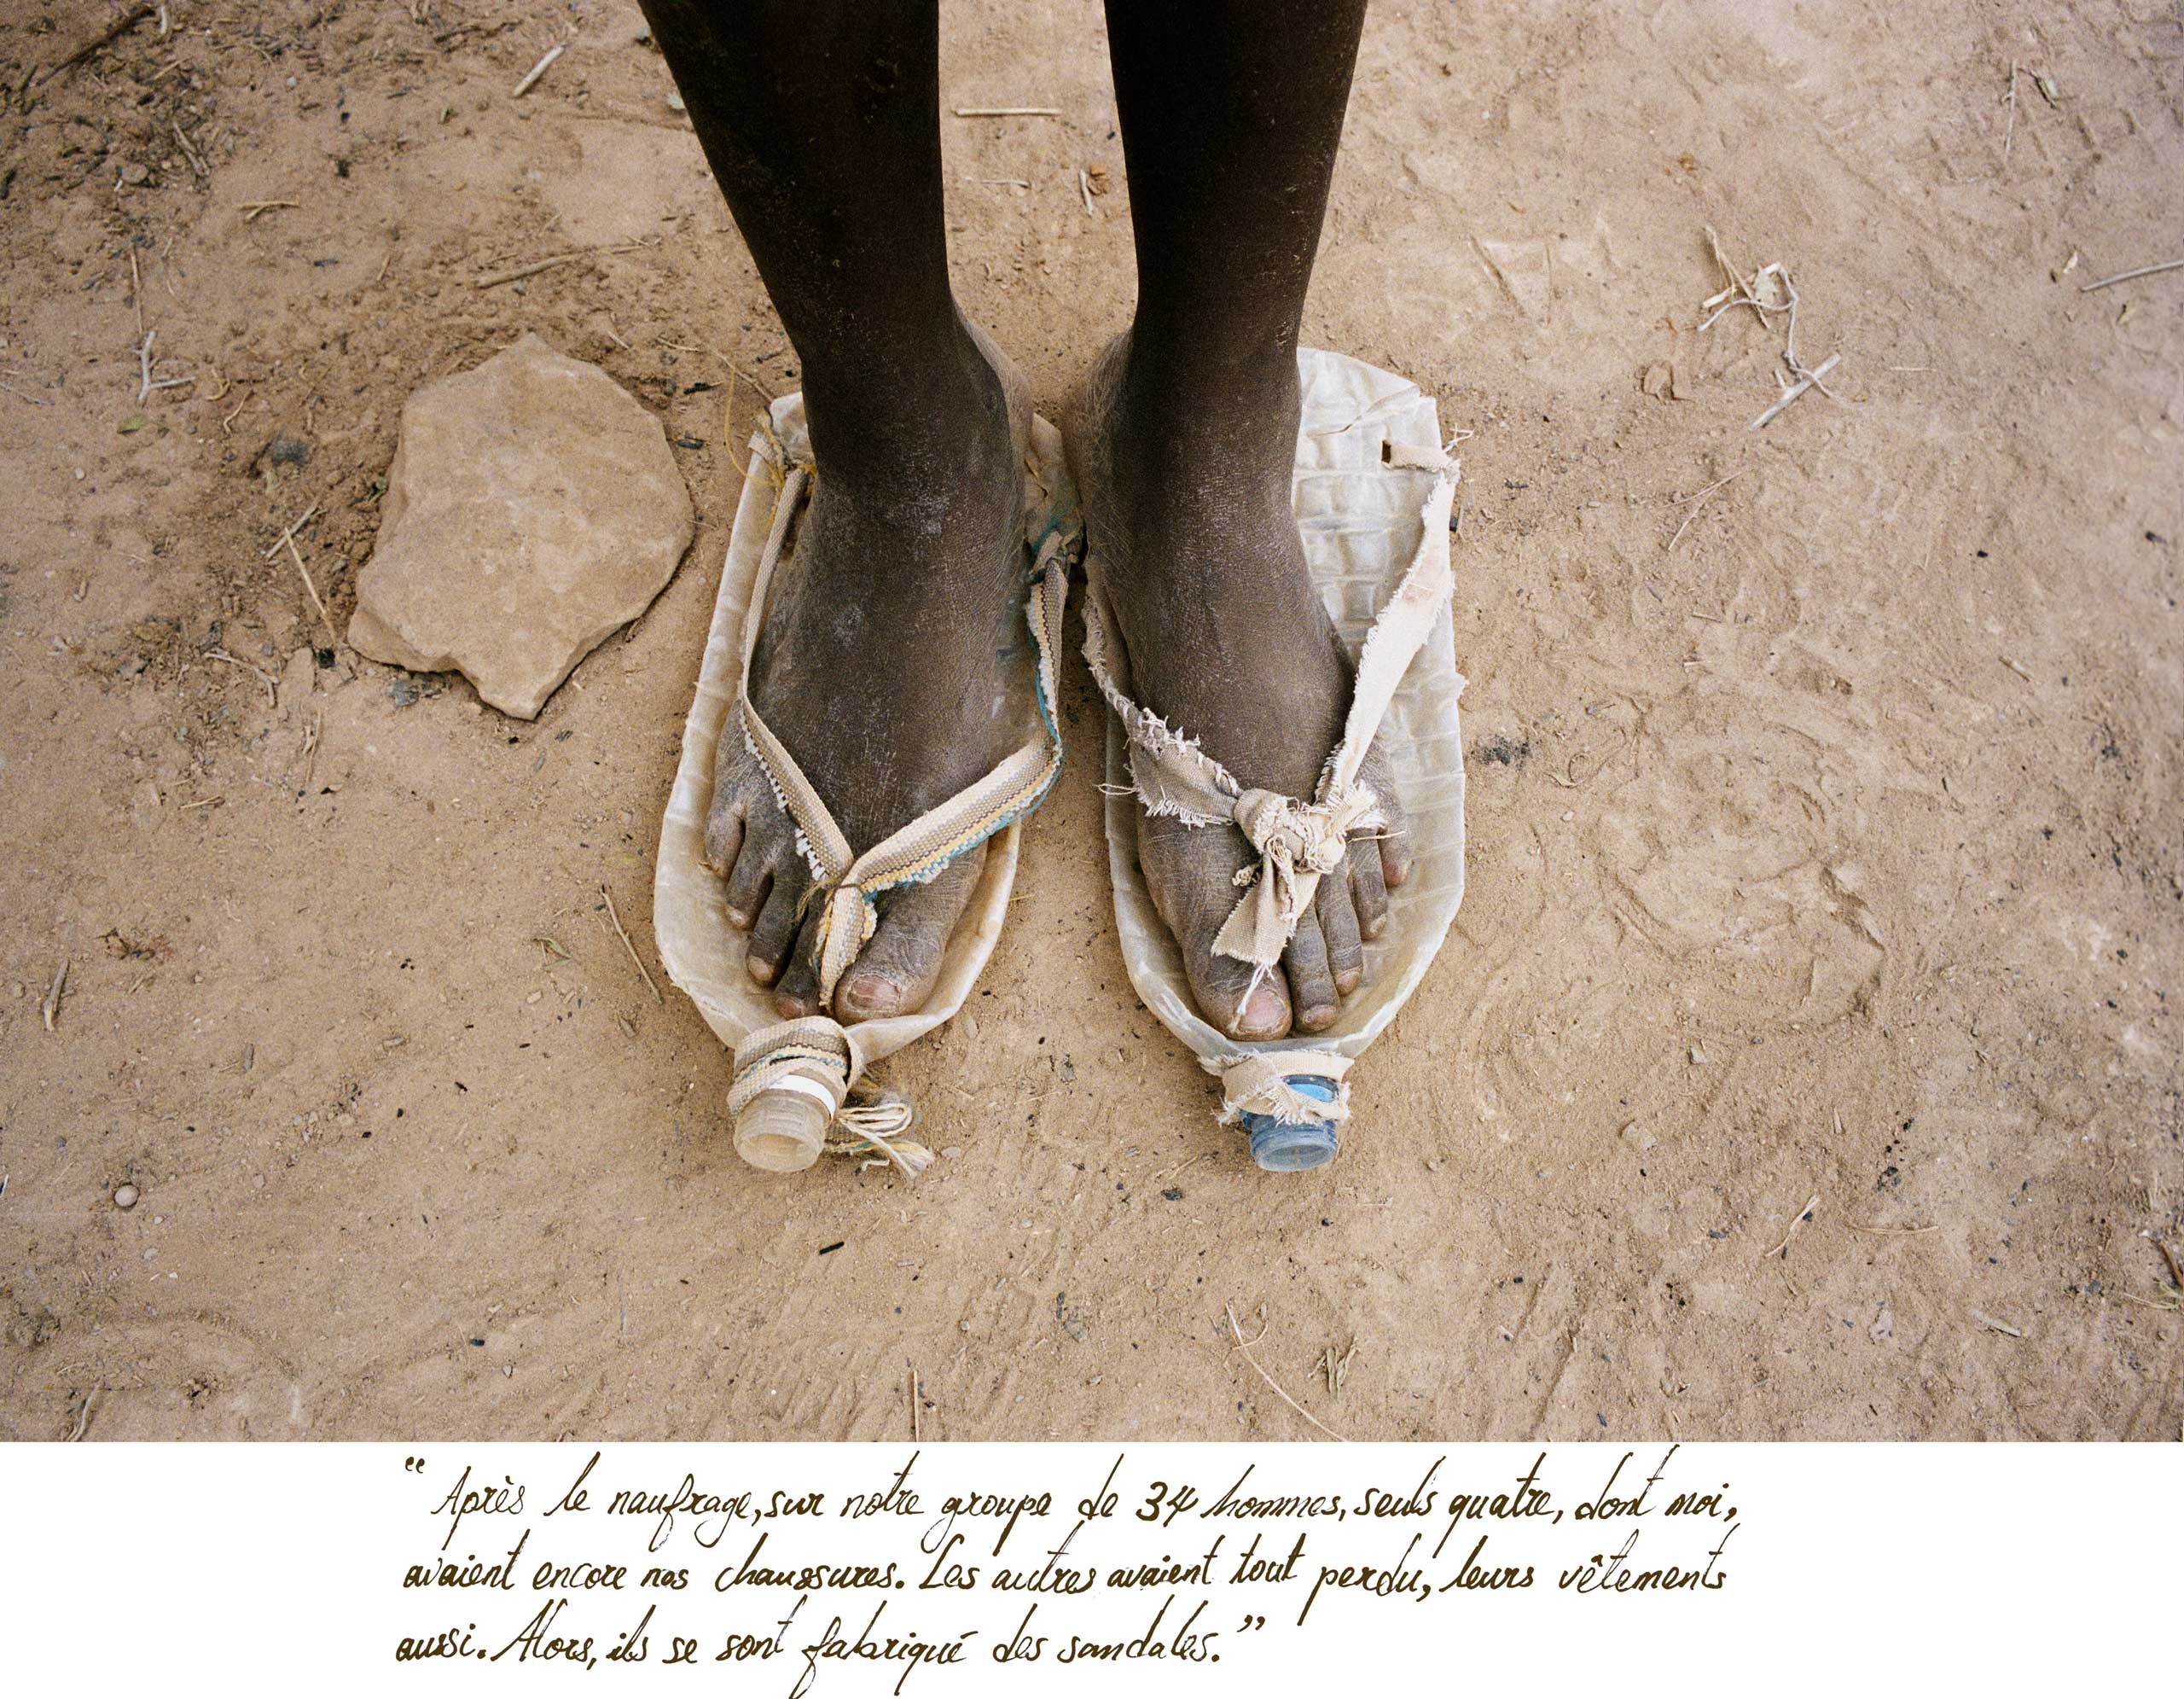 After a shipwreck off the coast of Morocco in Nov. 2004, only four of 34 men still had their shoes. The others lost everything, including their clothes, and had to make sandals out of makeshift items such as plastic bottles.